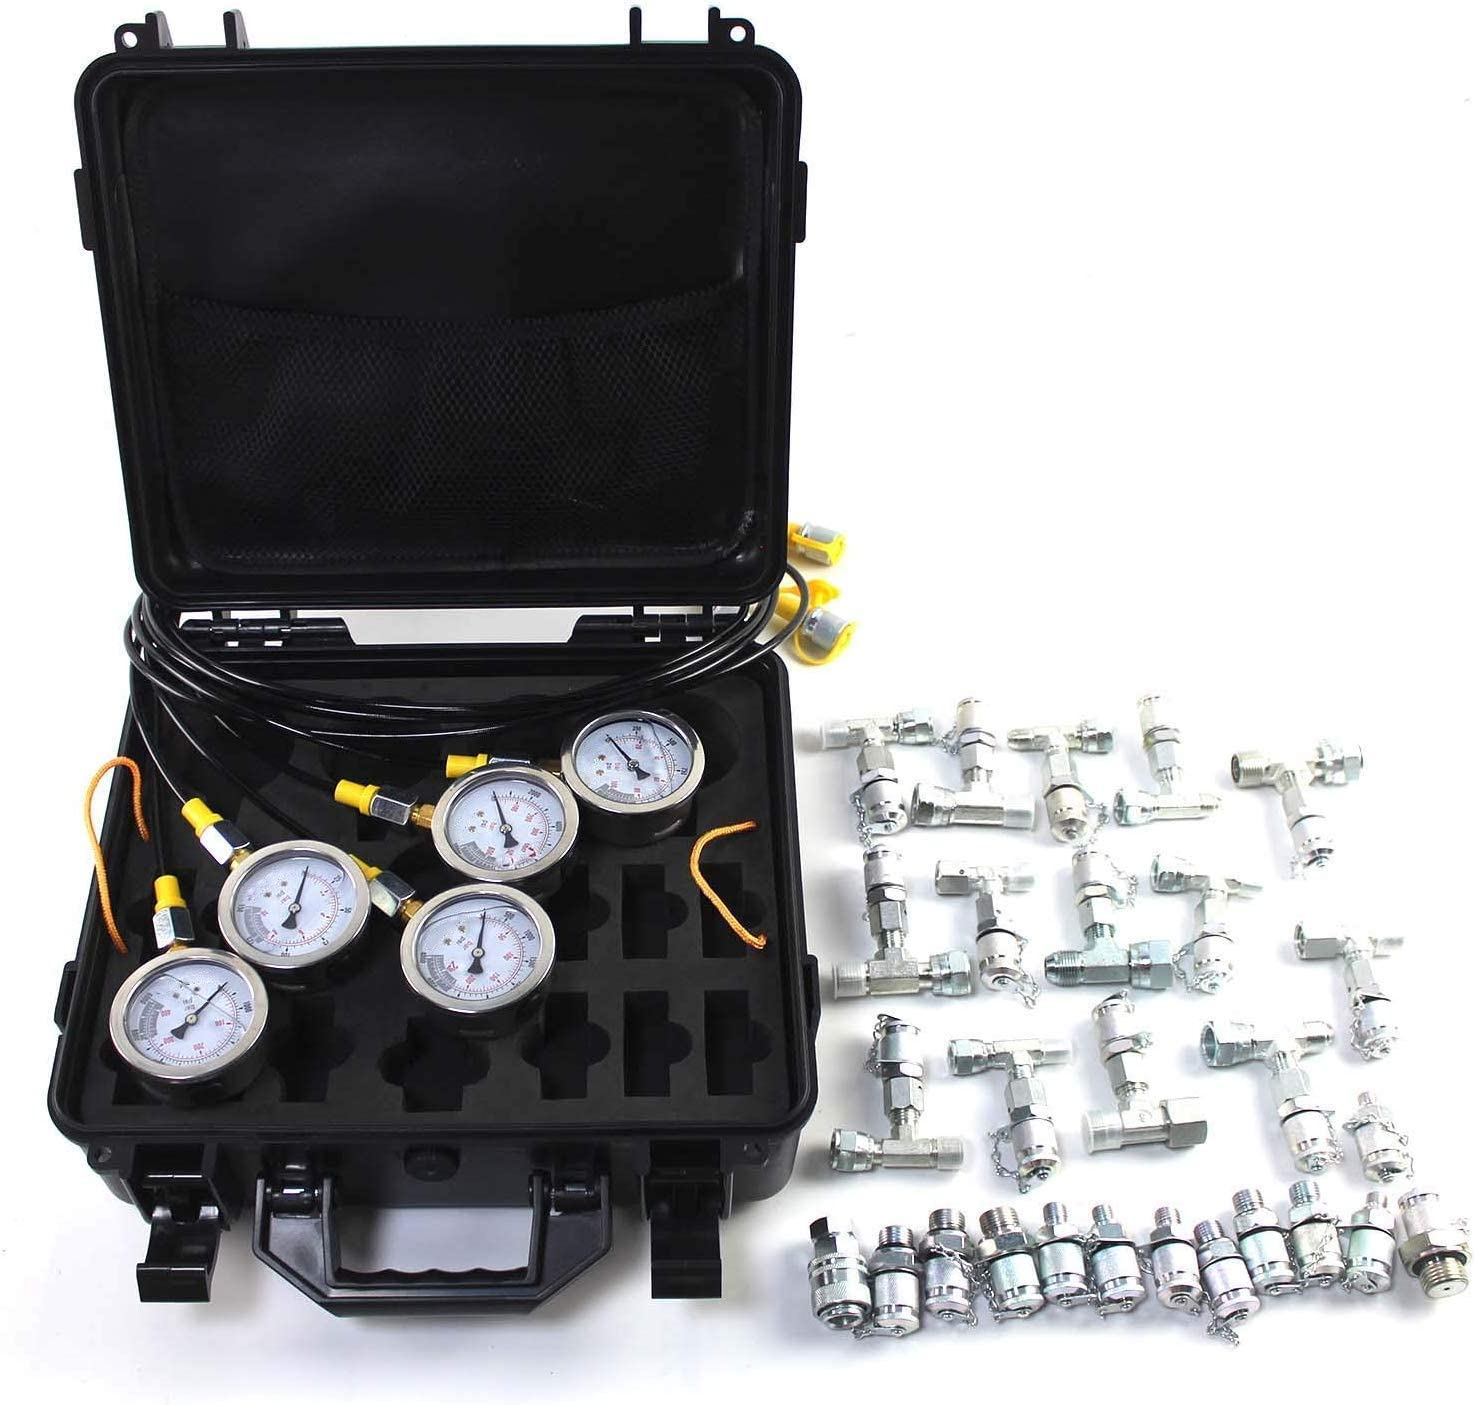 5 Test Hoses and 13 Couplings and 14 Tee Connectors Hydraulic Pressure Tester Used for Excavators etc; 2 Years Warrantyrts PANGOLIN Hydraulic Pressure Test Kit with 5 Gauges 3 Month Warranty